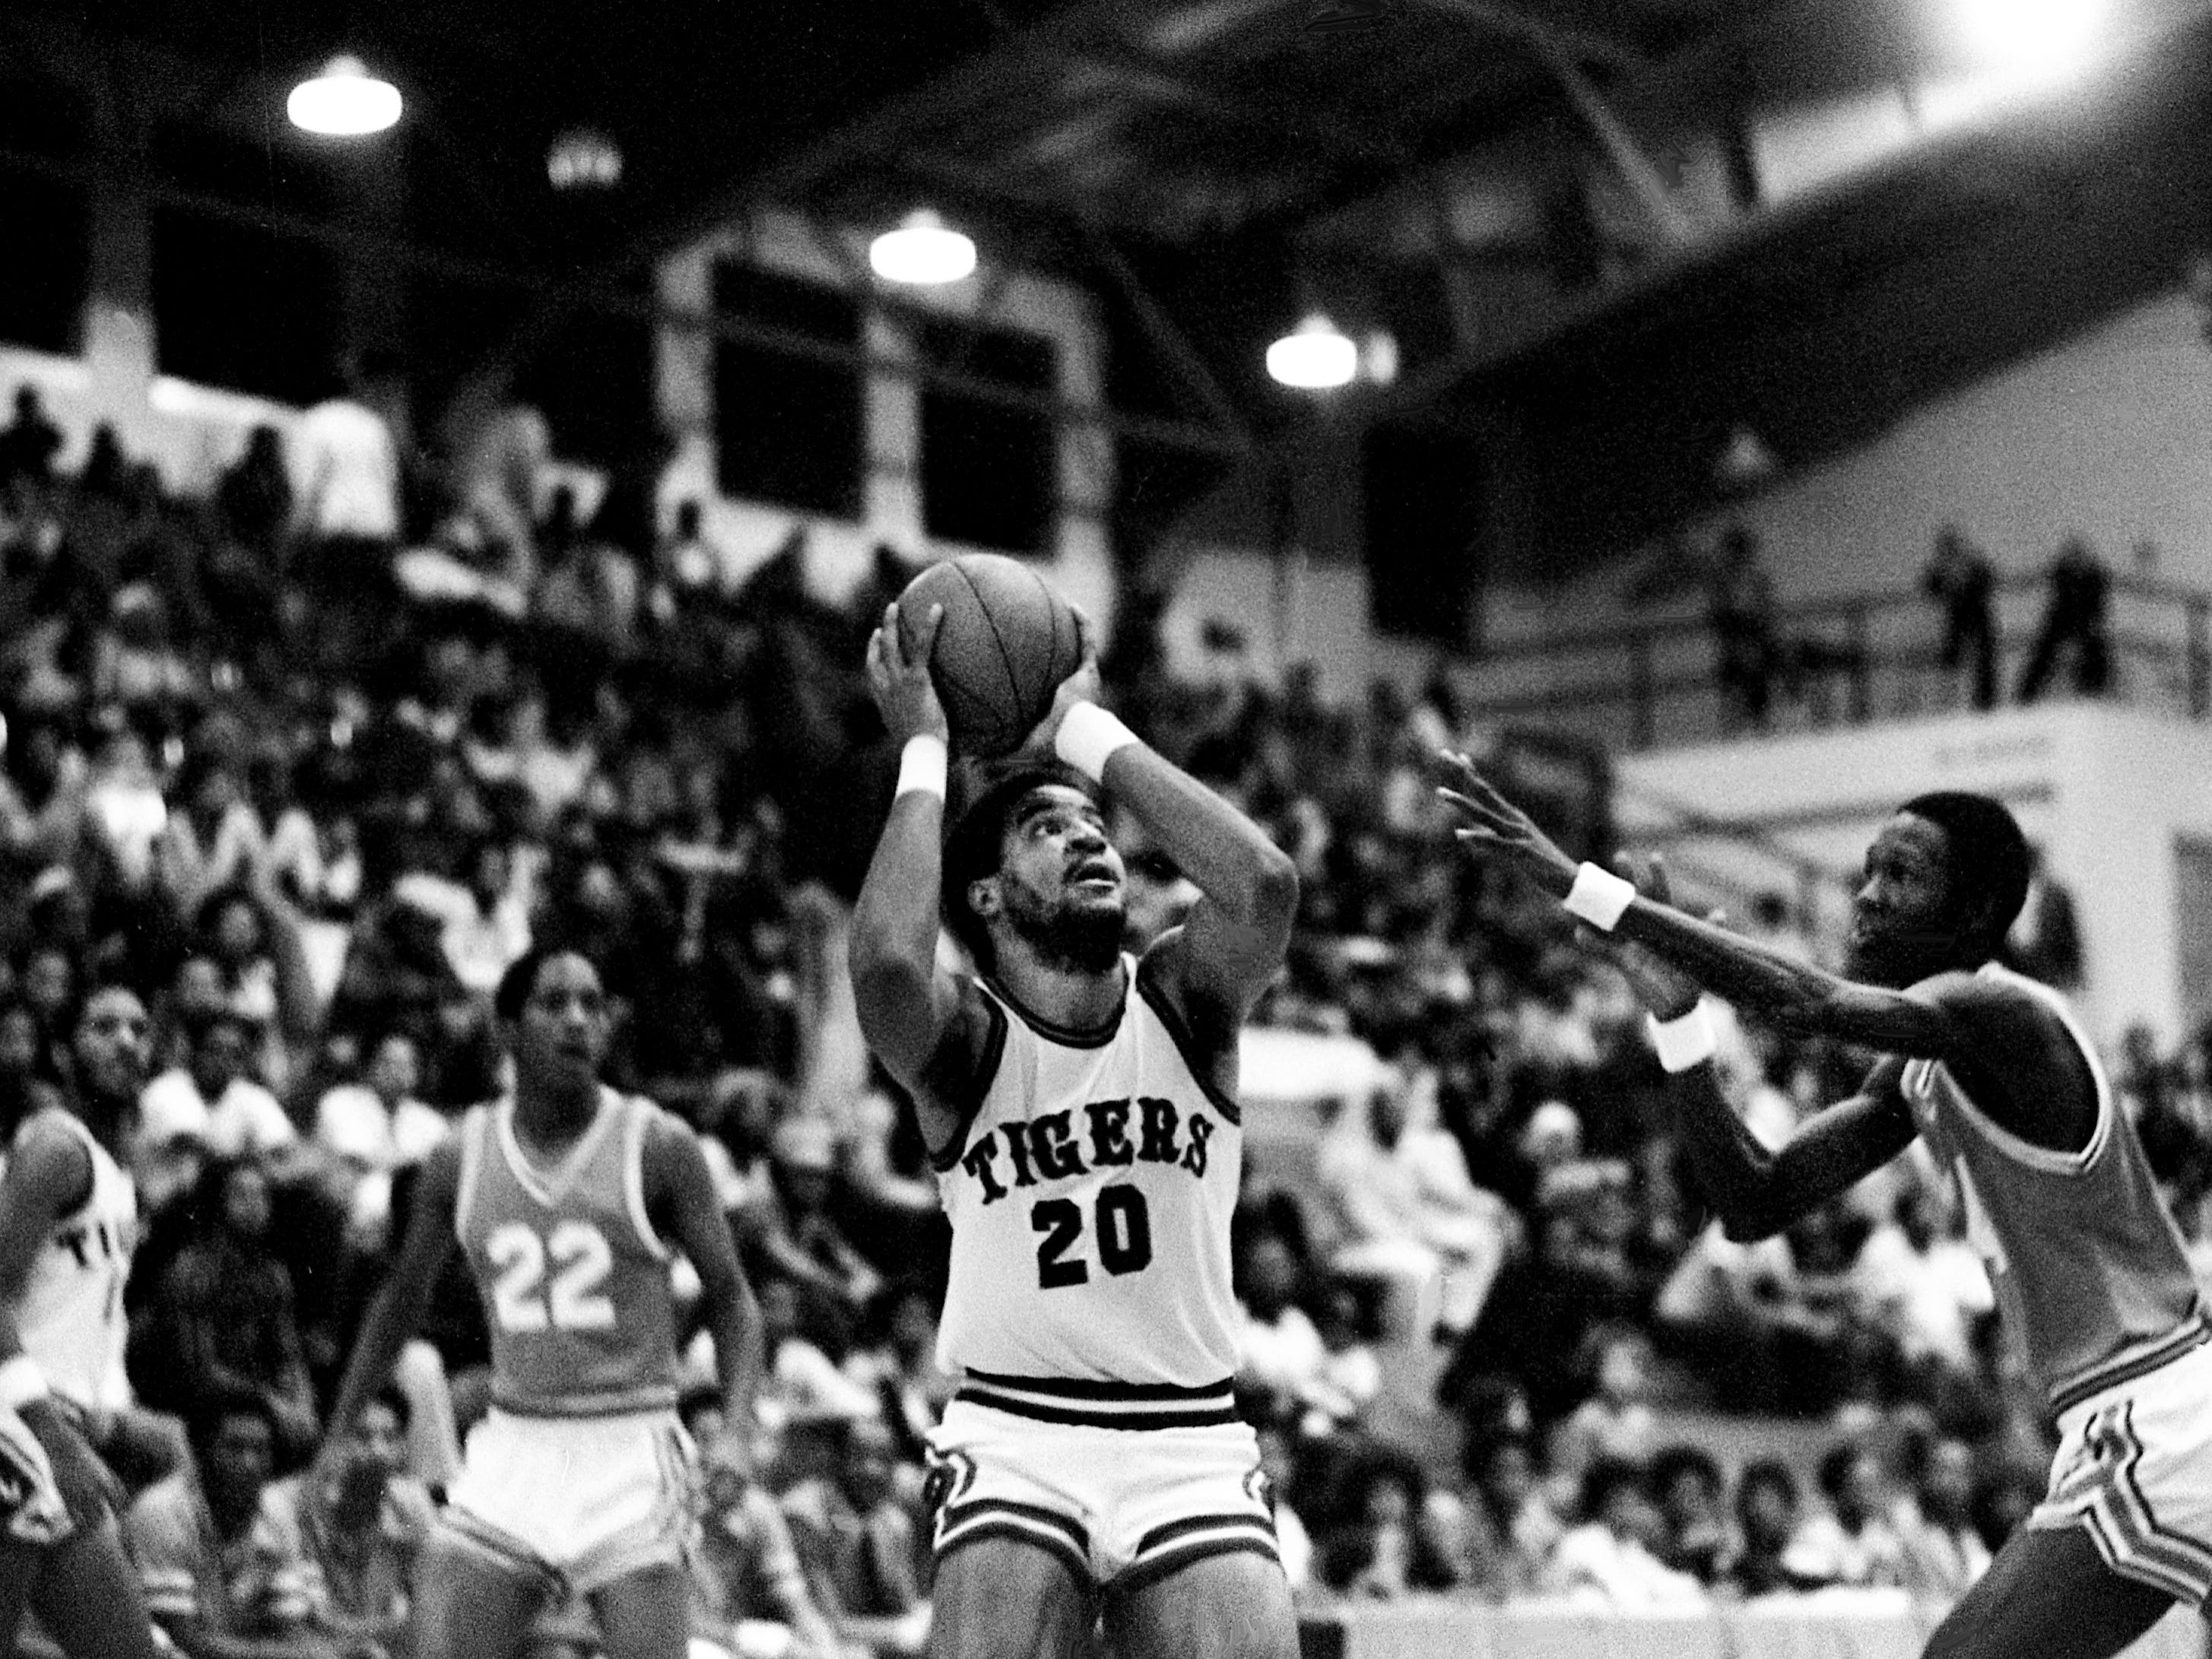 Tennessee State's James Tucker (20) is set to shoot in their 92-88 victory over LeMayne-Owen at home Jan. 13, 1979, in Kean's Little Garden. Tucker scored 16 points and grabbed 10 rebounds.